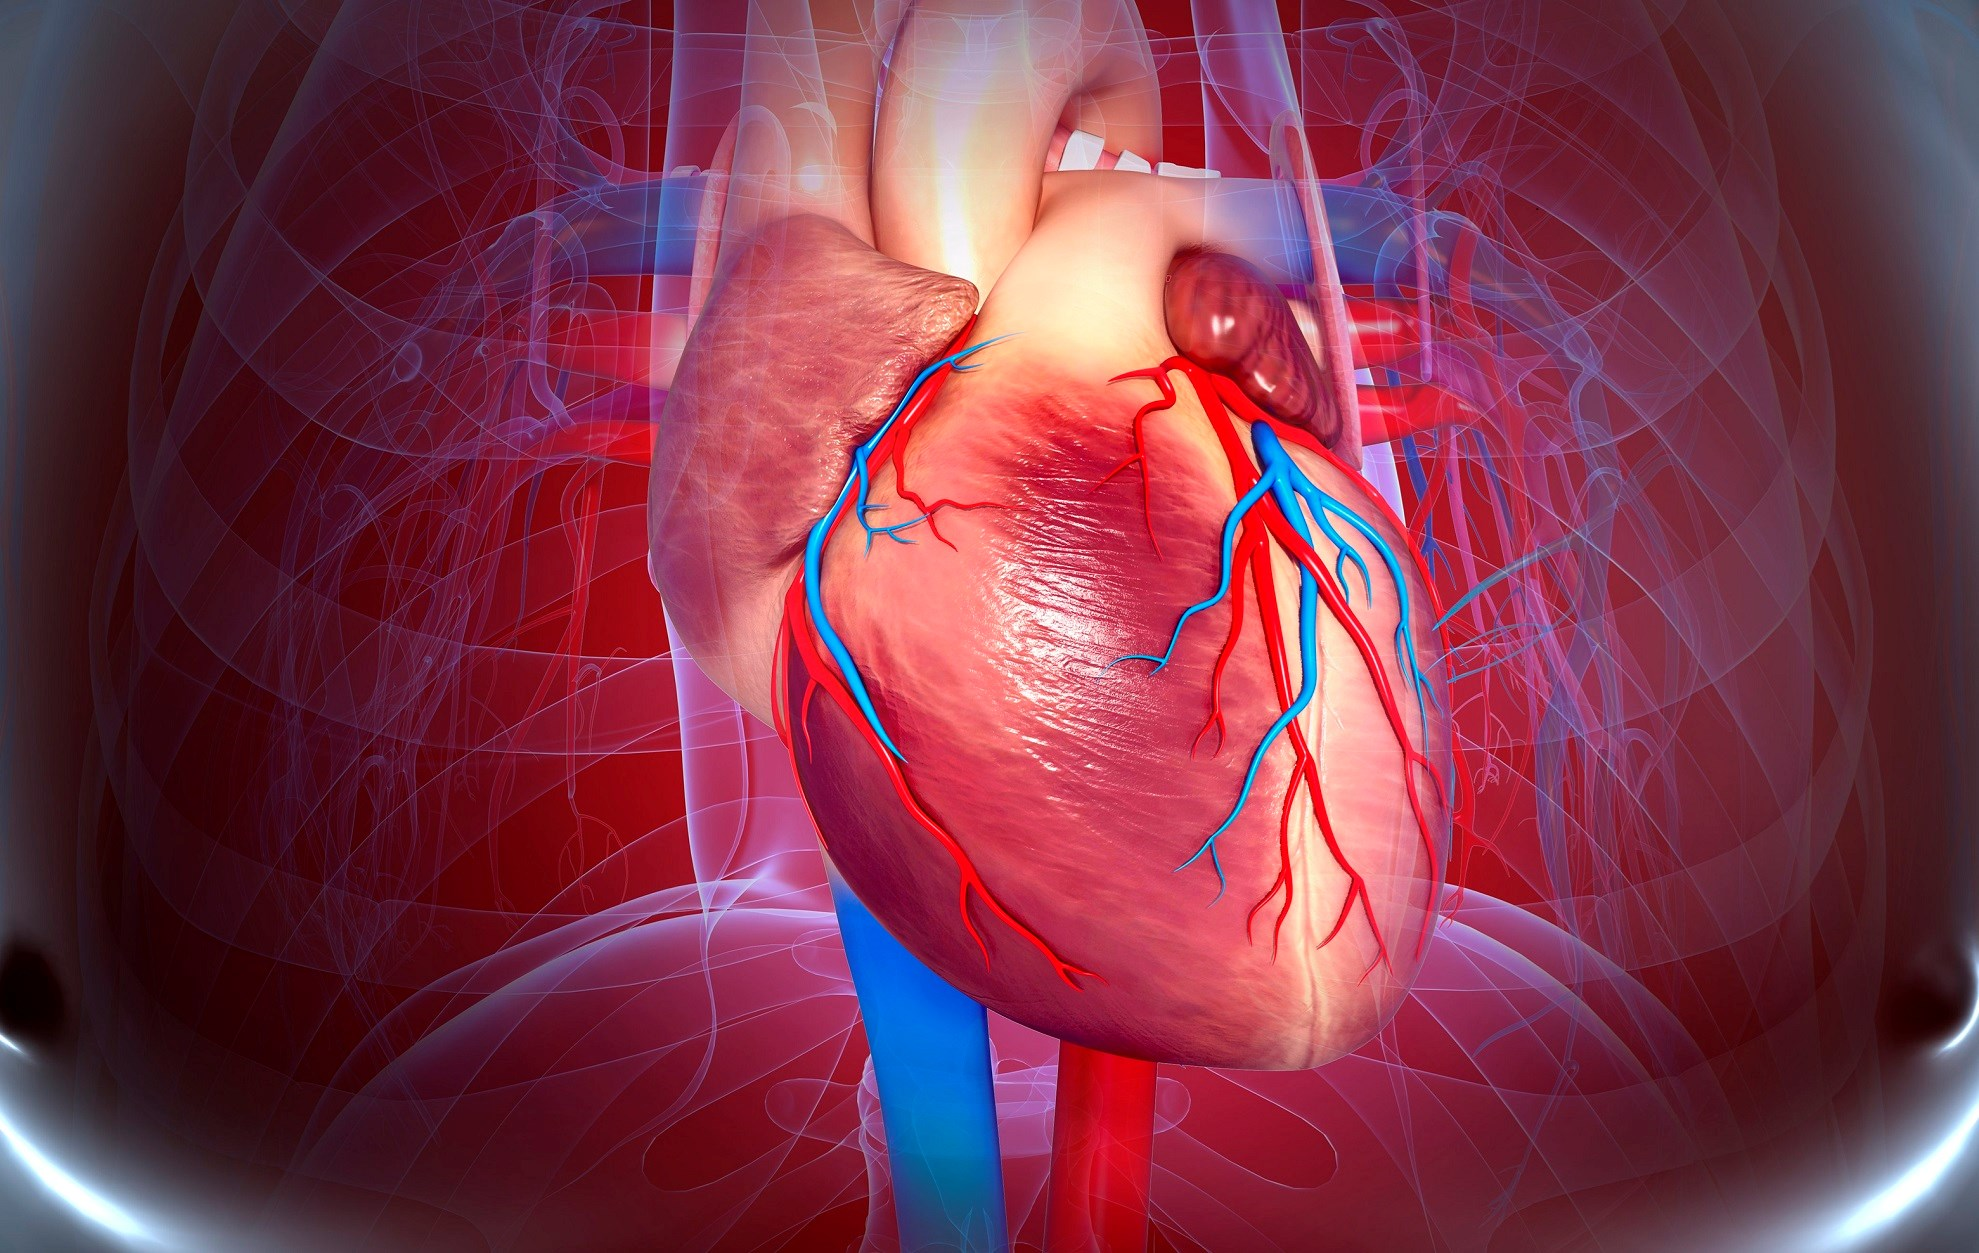 For patients with asymptomatic left ventricular systolic dysfunction (ALVSD), those with diabetes have increased risk of heart failure development and hospitalization.